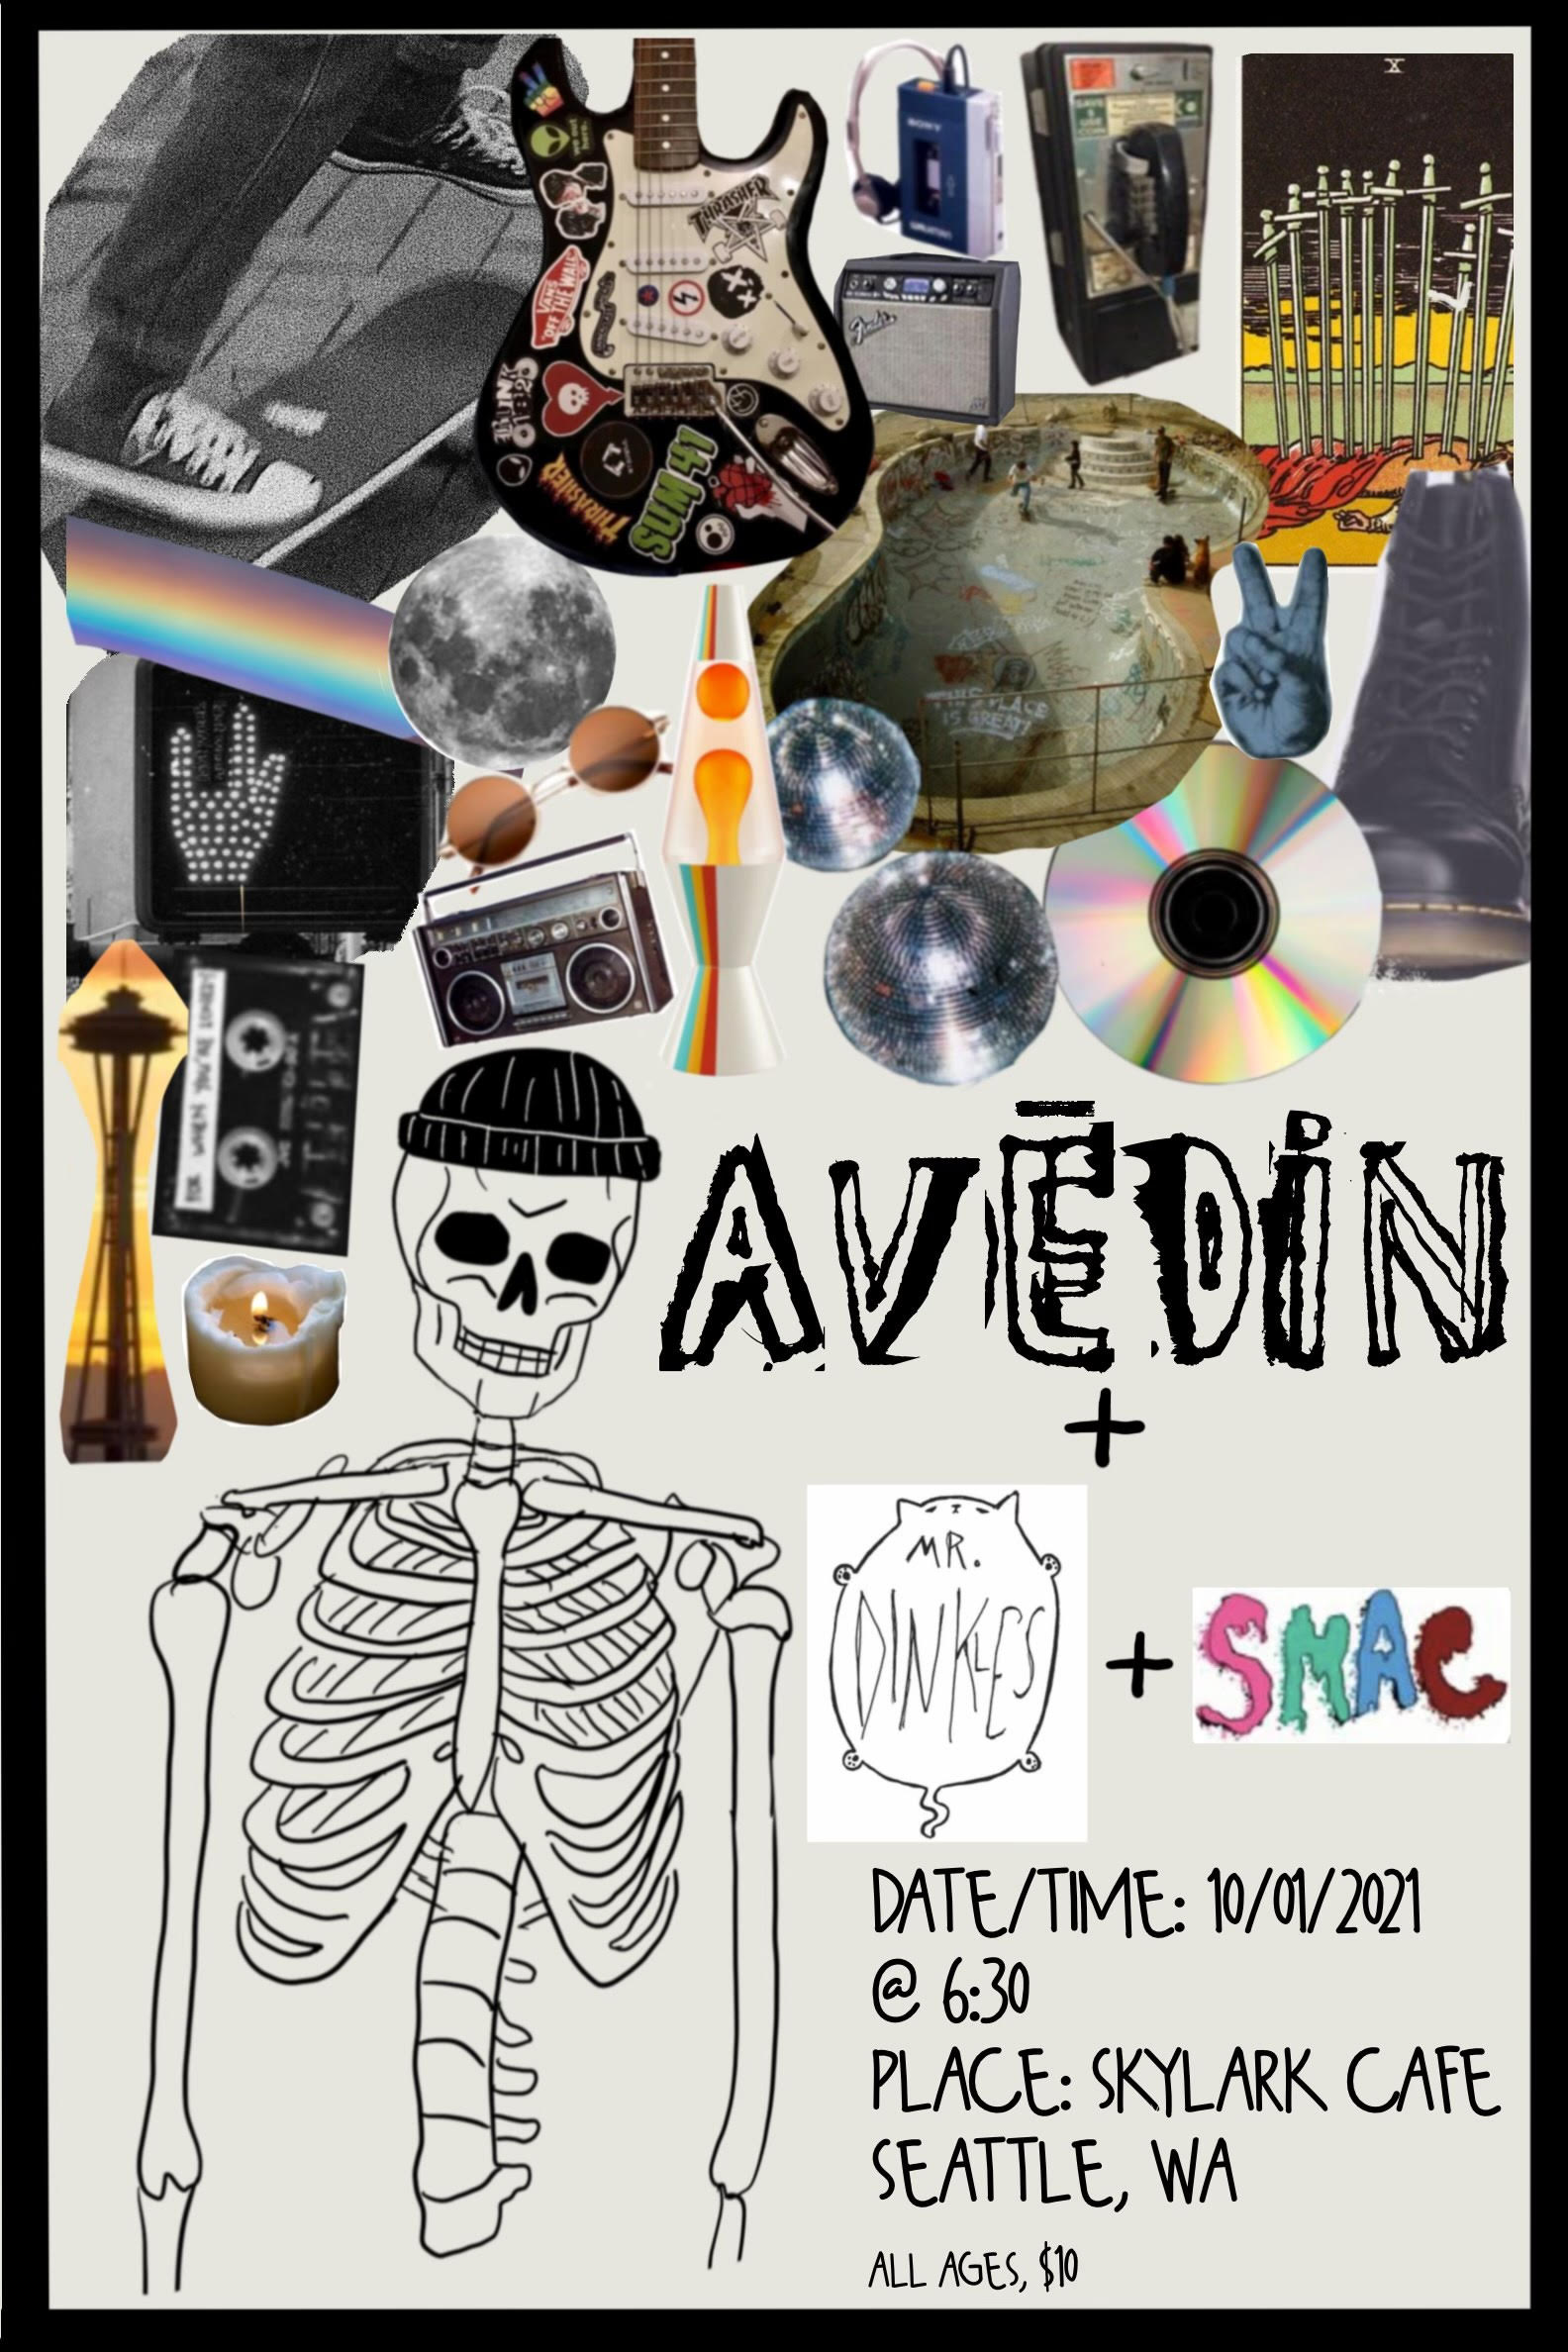 The kids are alright! Come hear some of Seattle's rockin-est up and comers including Avēdin, SMAC, and returning to the stage after melting some faces a few months ago, Mr. Dinkles. Music starts at 7:00 $10 All ages